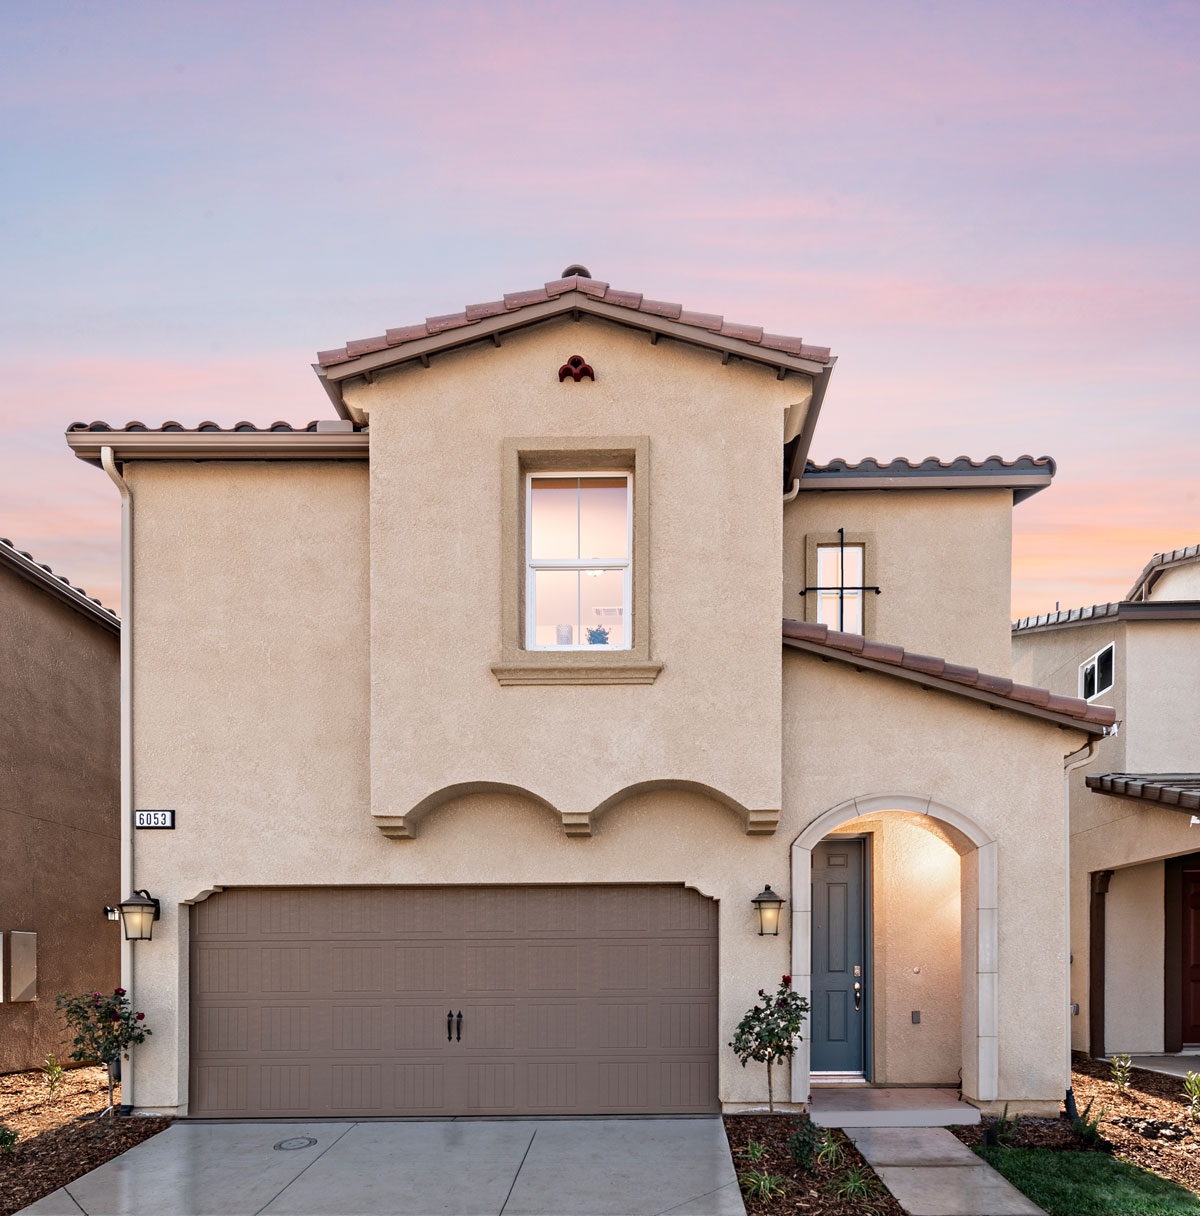 Tradition 1398 Sq. Ft + 3 Bed + 2.5 Bath